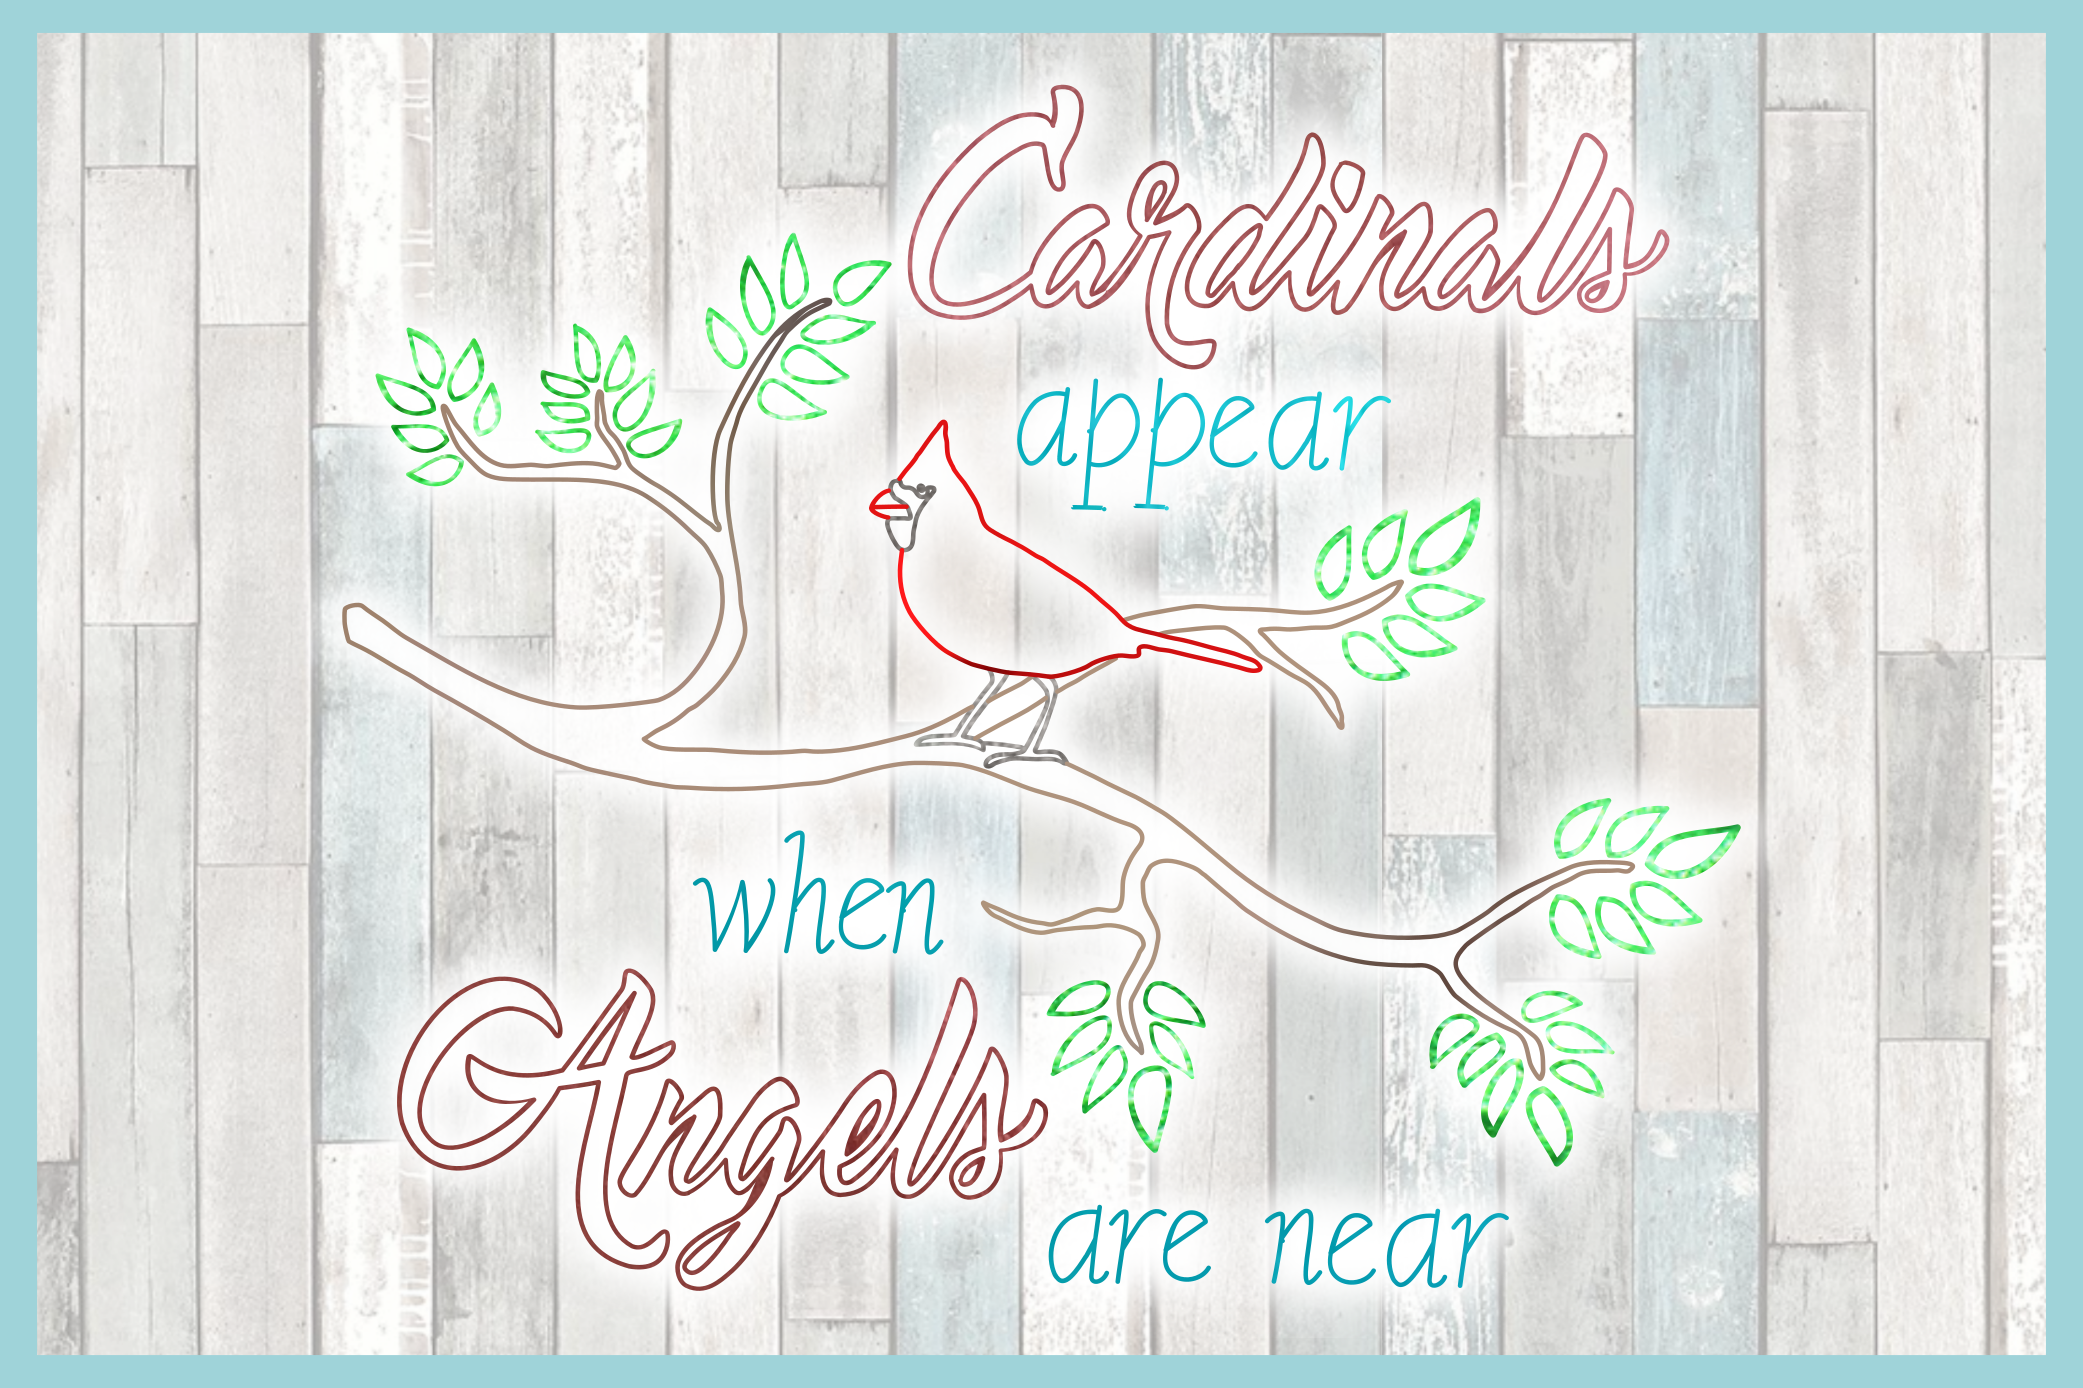 Cardinals Appear When Angels Are Near Foil Quill Single Line example image 2